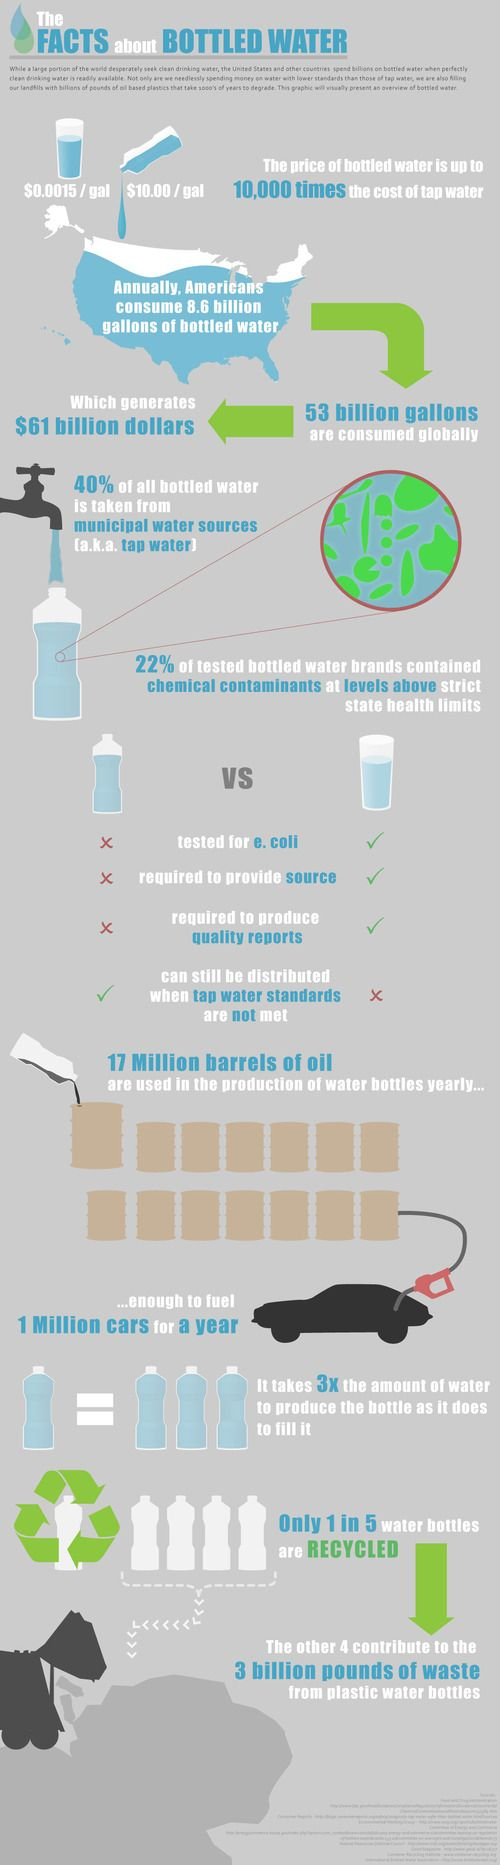 Ditch the bottled water and filter your own tap water!